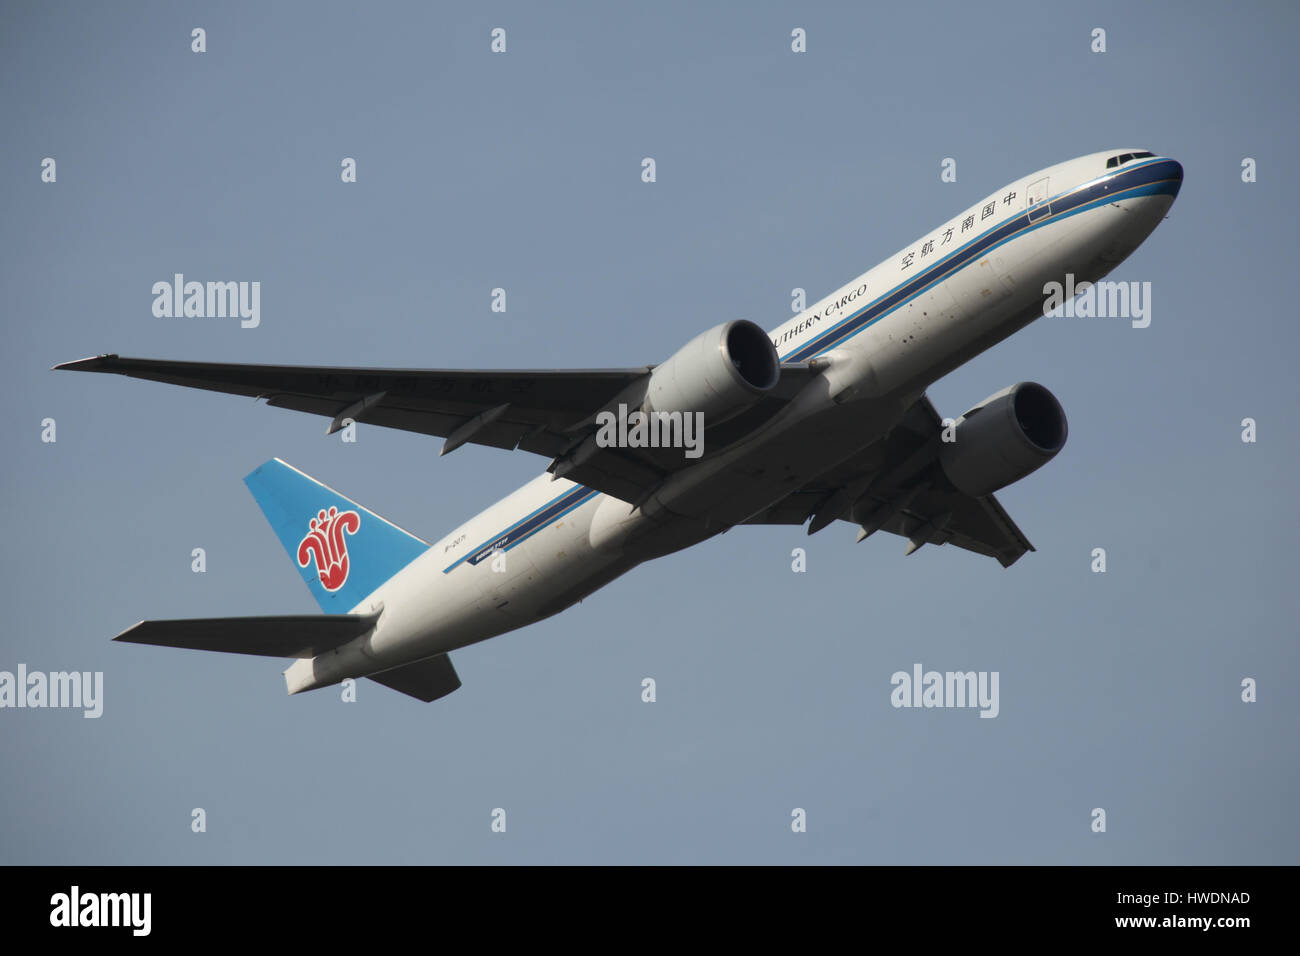 London Stansted Airport, 13 Mar 2017 - China Southern Cargo, Boeing 777, B-2071, departure - Stock Image